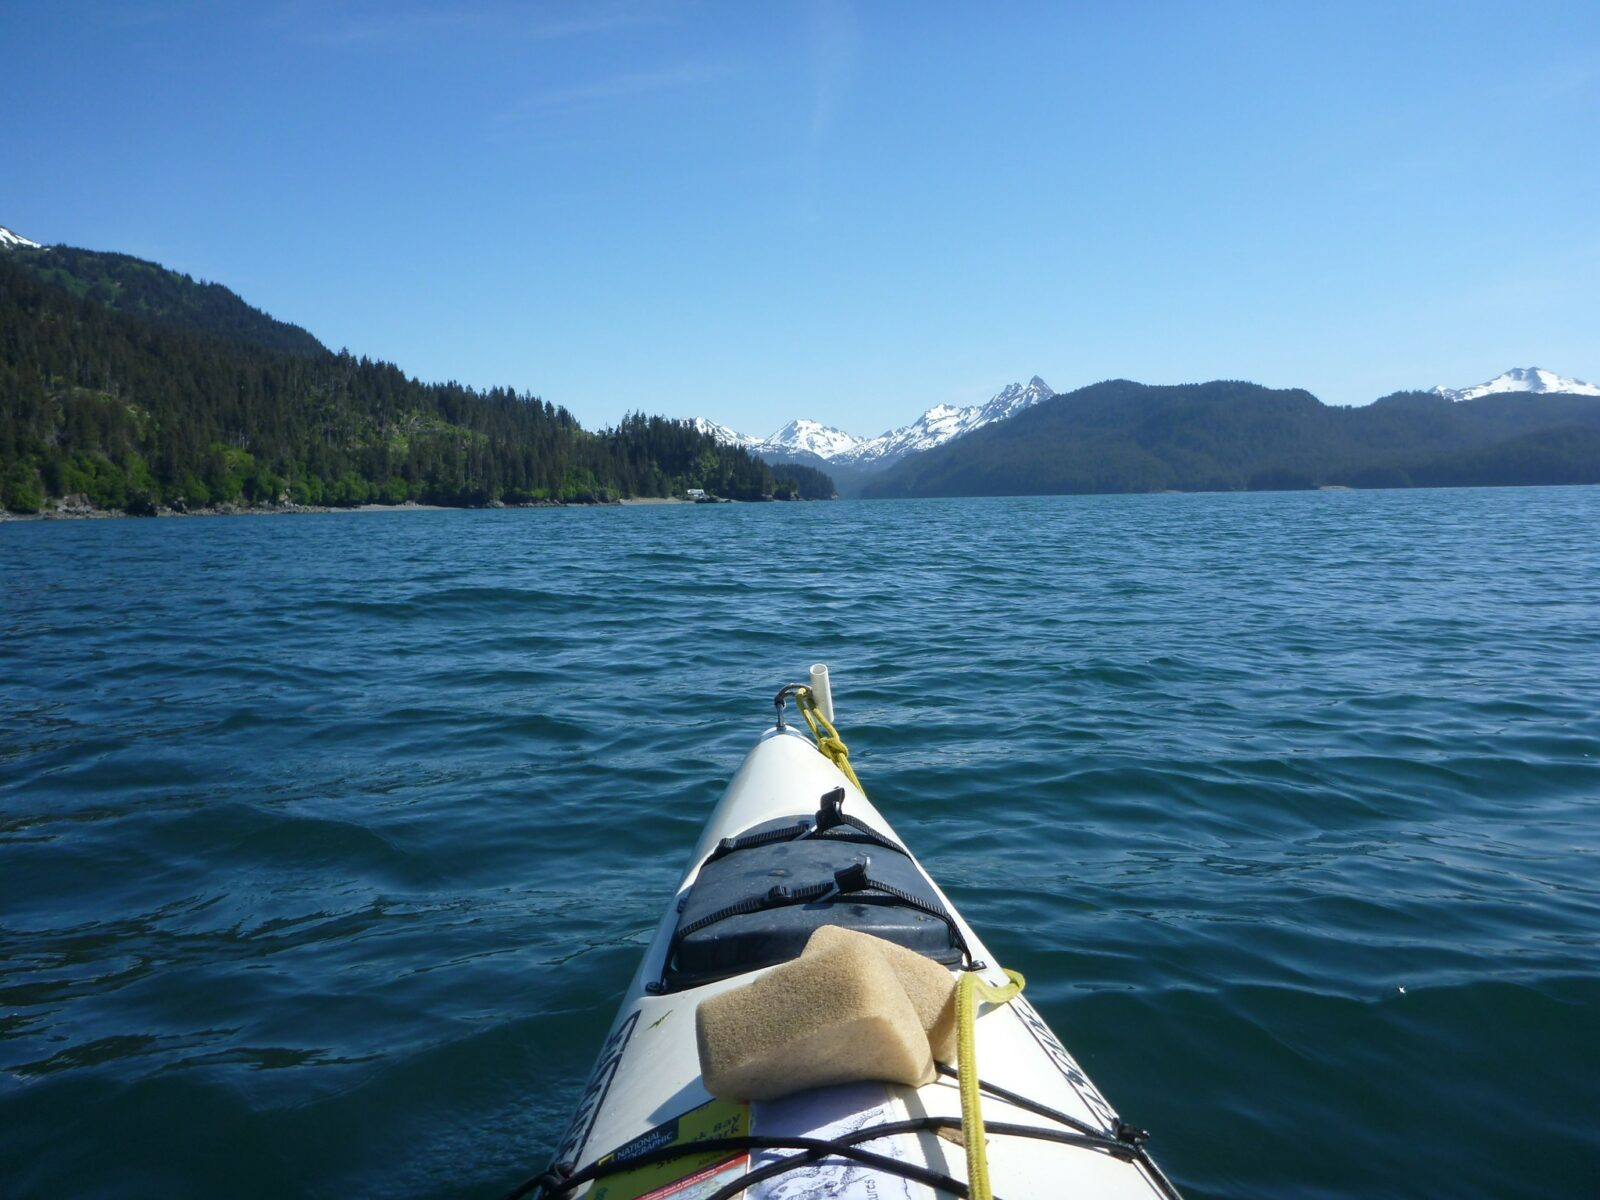 The front of a white kayak in Kachemak Bay near Homer, Alaska. There are high snowcapped mountains in the distance and forested hillsides